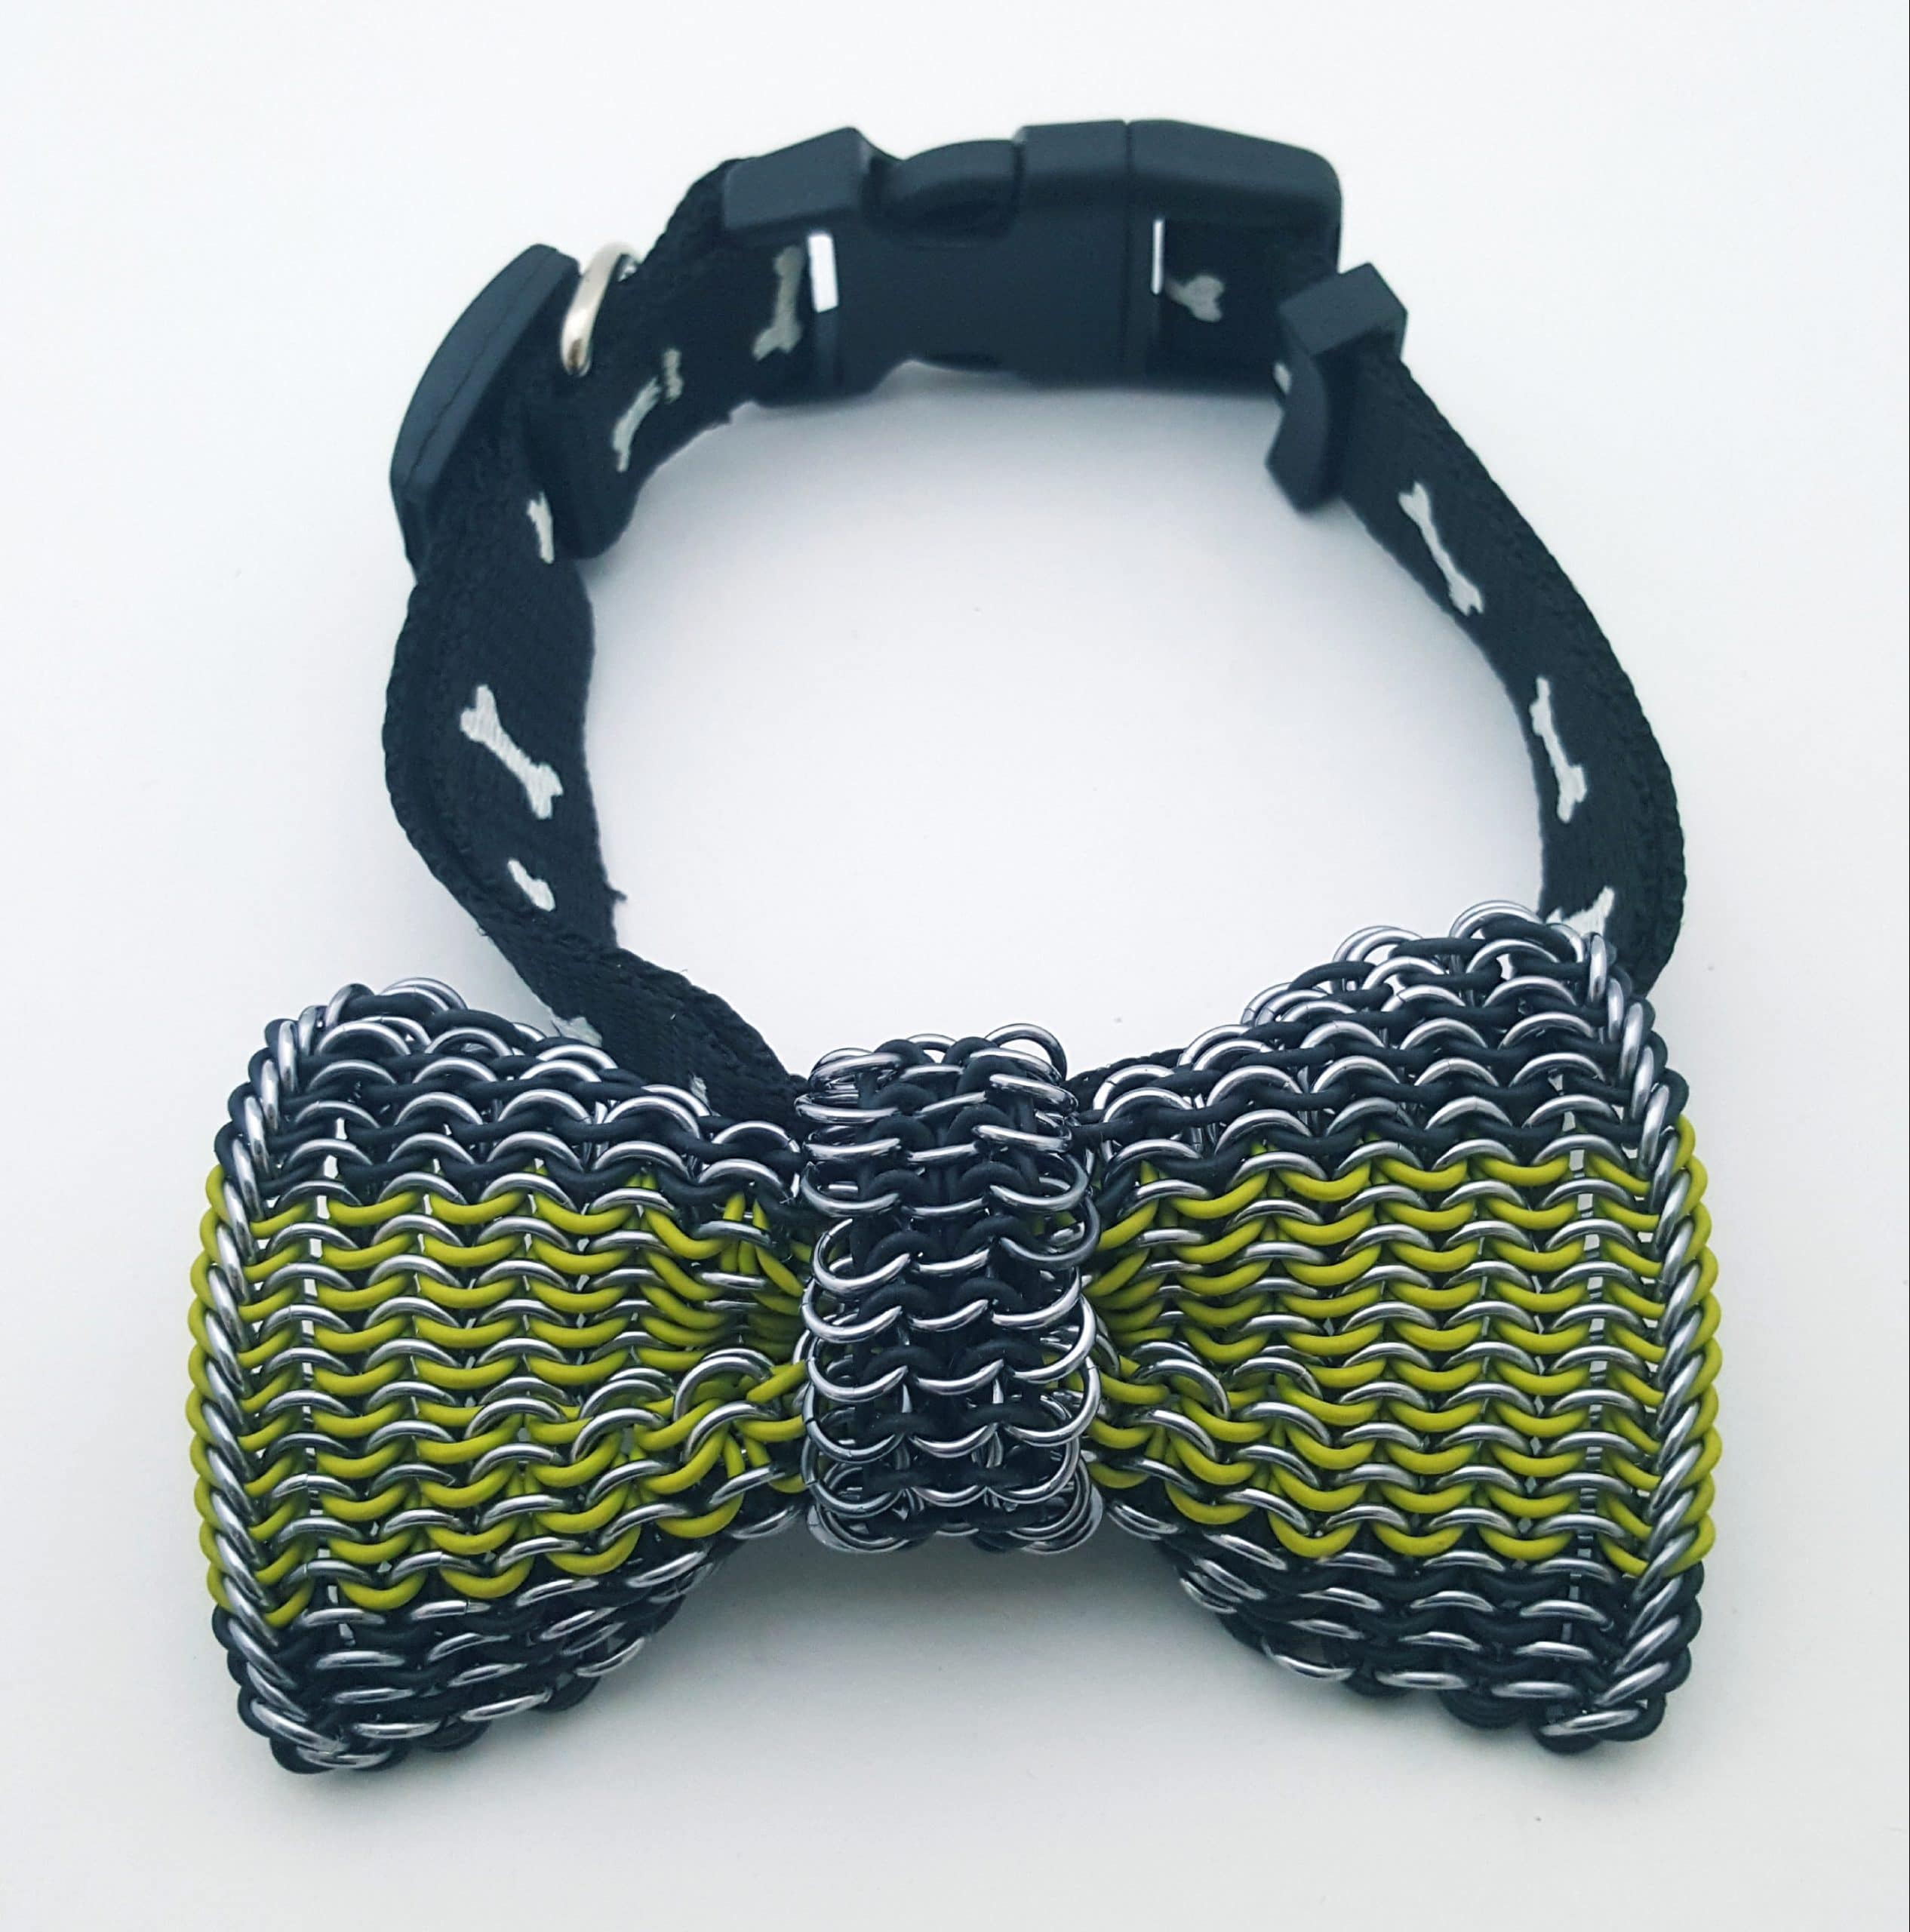 Wirework Designs | Handcrafted chainmaille jewellery and chainmaille products | Dog Bowtie with Adjustable Nylon Collar | 20200203_123755